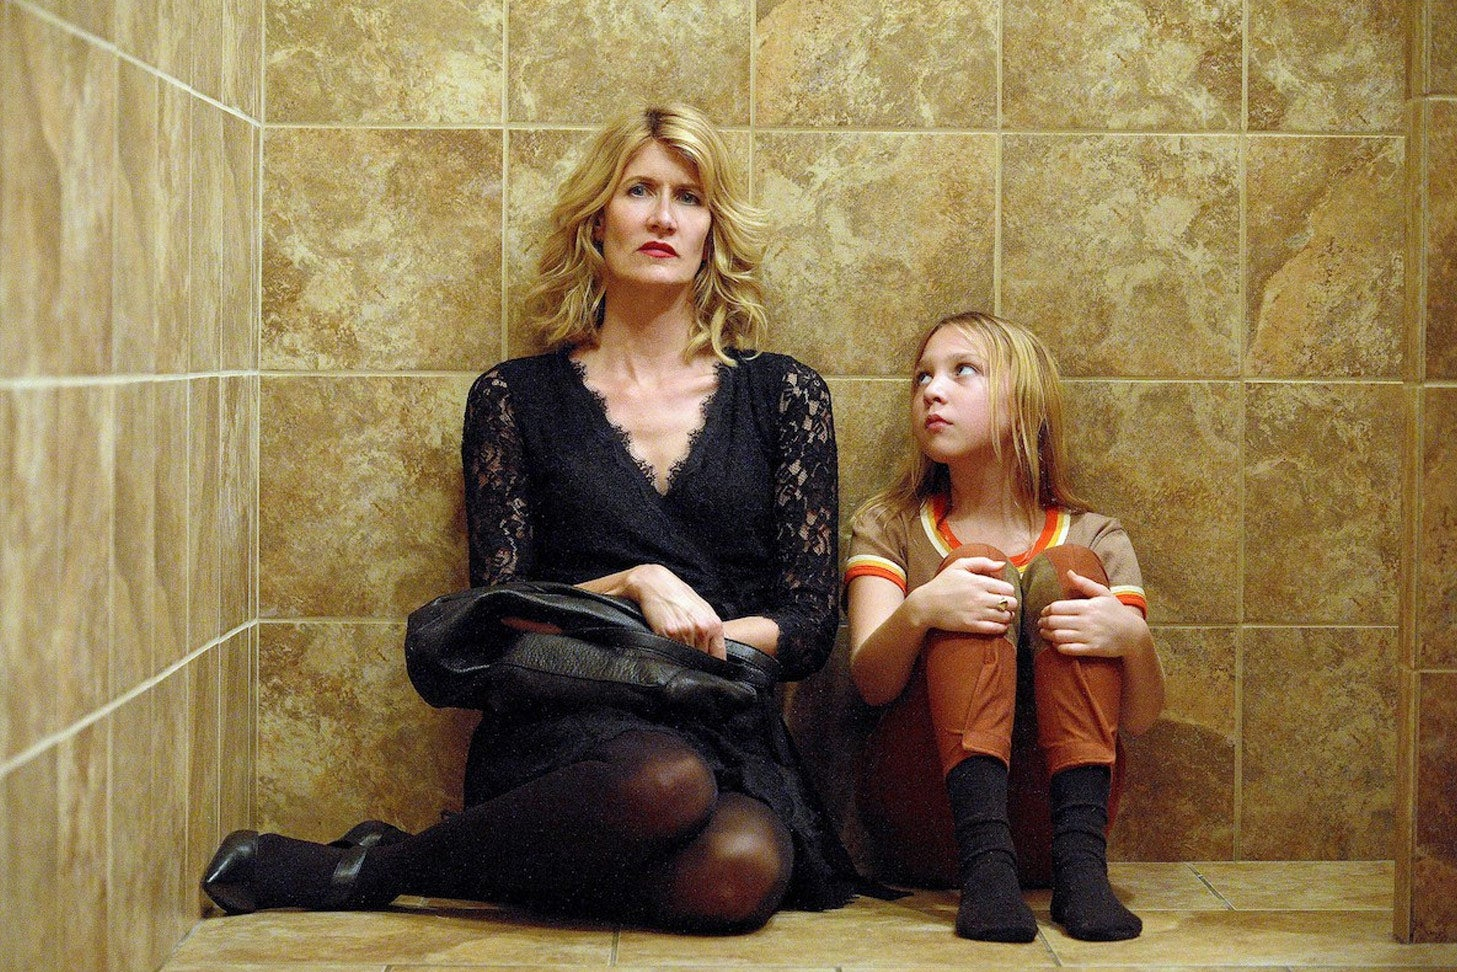 Laura Dern and Isabelle Nélisse sit next to each other on a tile floor in this promotional image for The Tale.